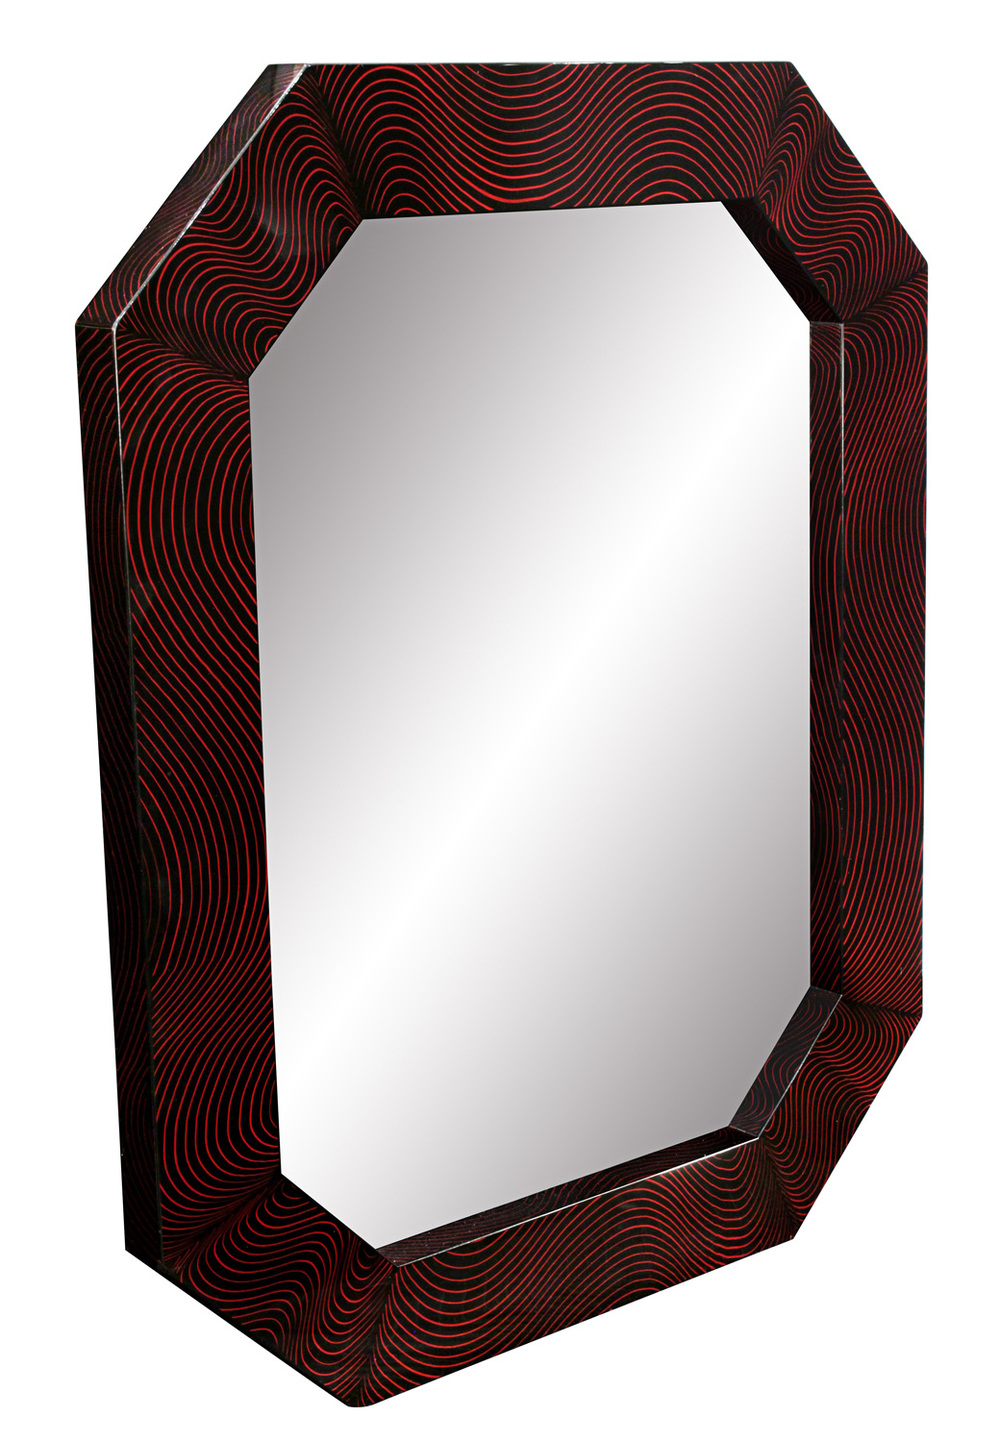 Digennaro 85 mirror blk+red wavey mirror198 detail1 hires.jpg